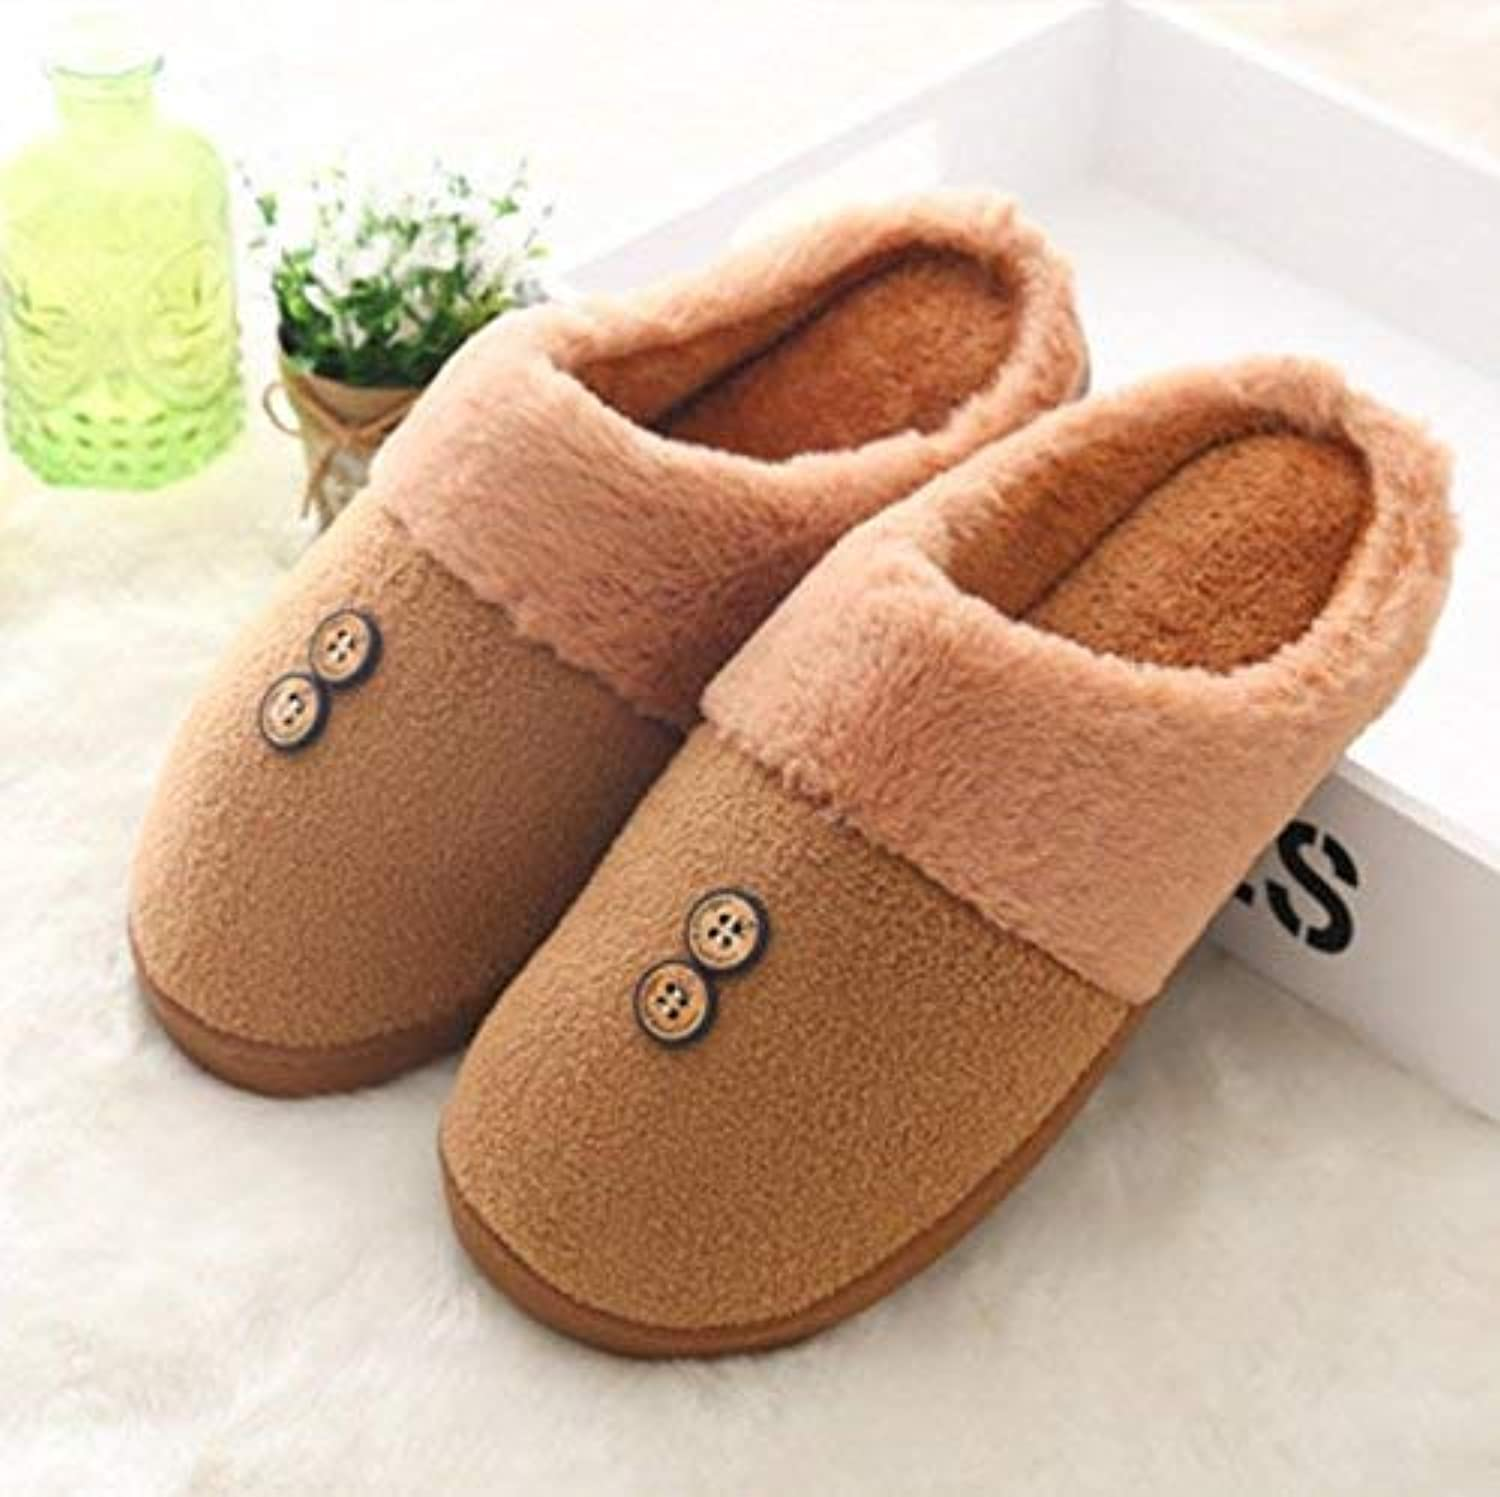 Men 's Home shoes Cotton Slippers Indoor Non Slip Casual Keep Warm Slippers Medium for Men Brown shoes